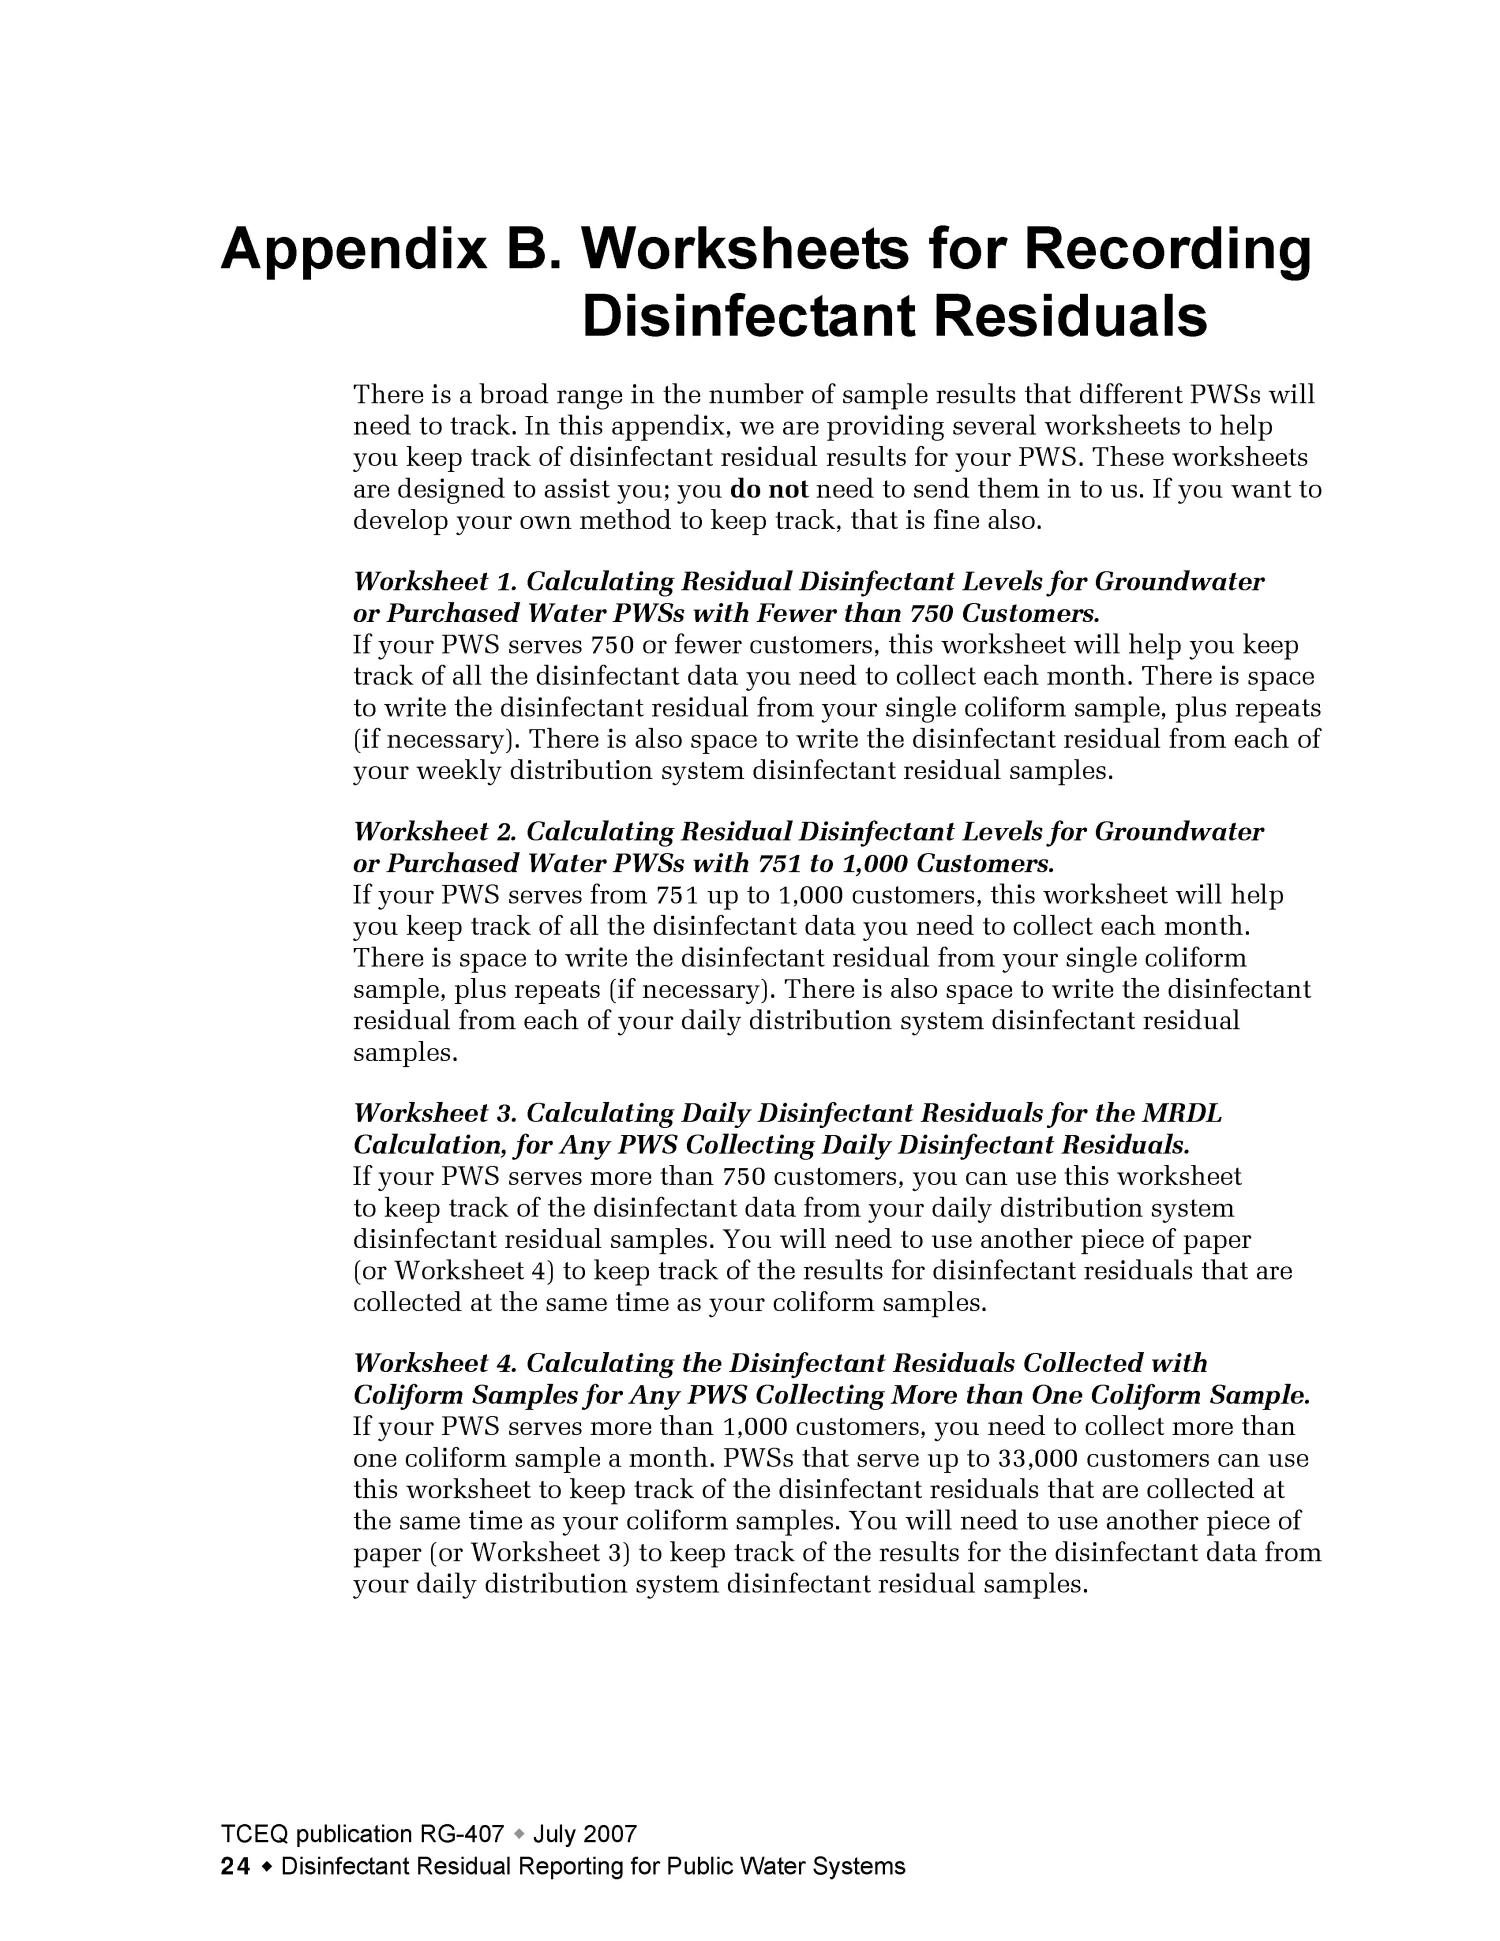 Disinfectant Residual Reporting for Public Water Systems Page – Texas History Worksheets